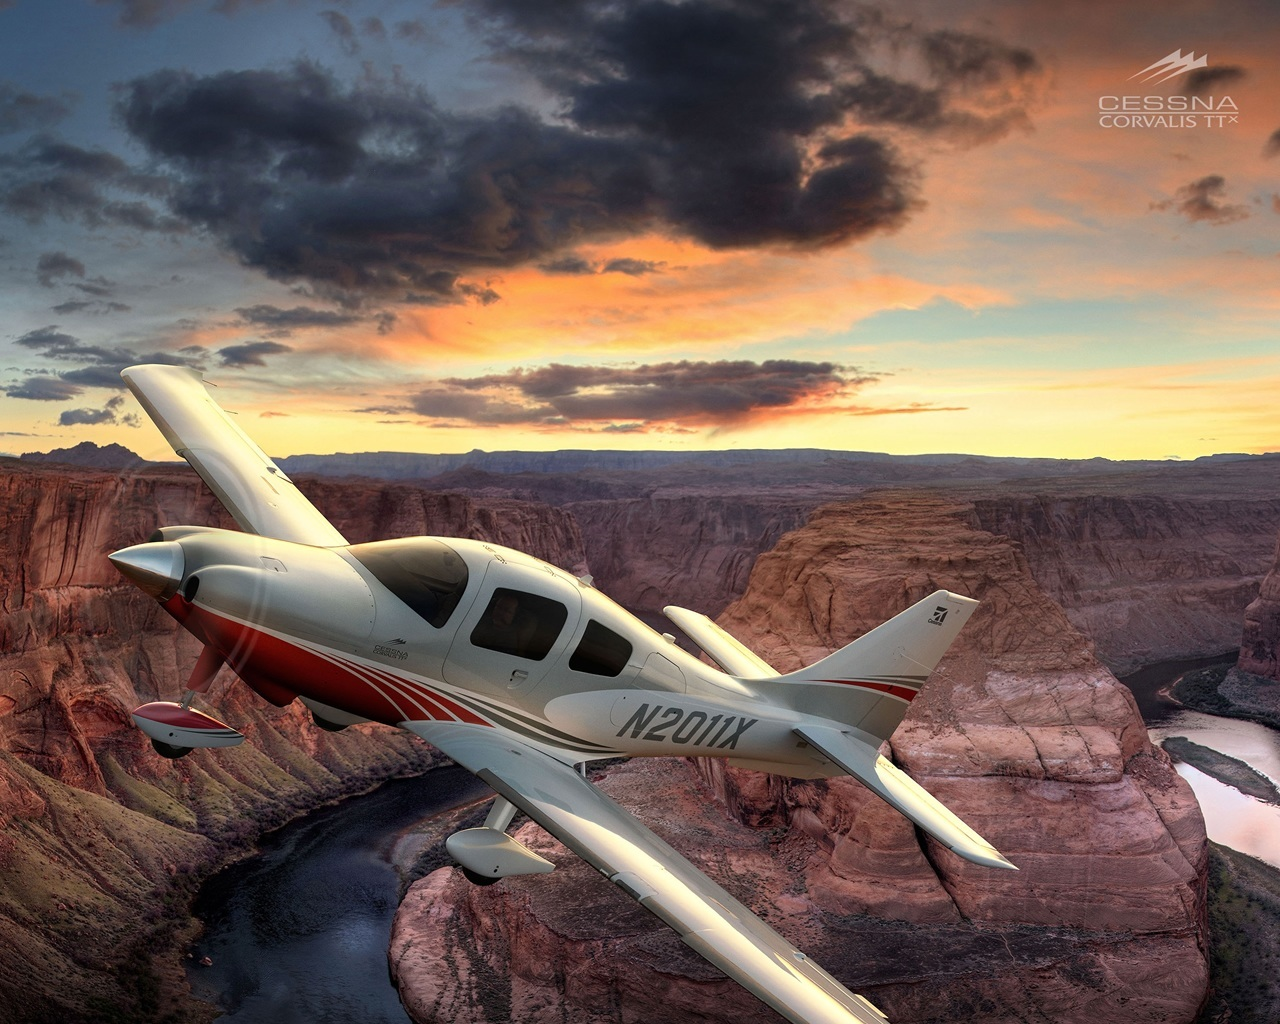 New Cessna Corvalis TTX Announced!